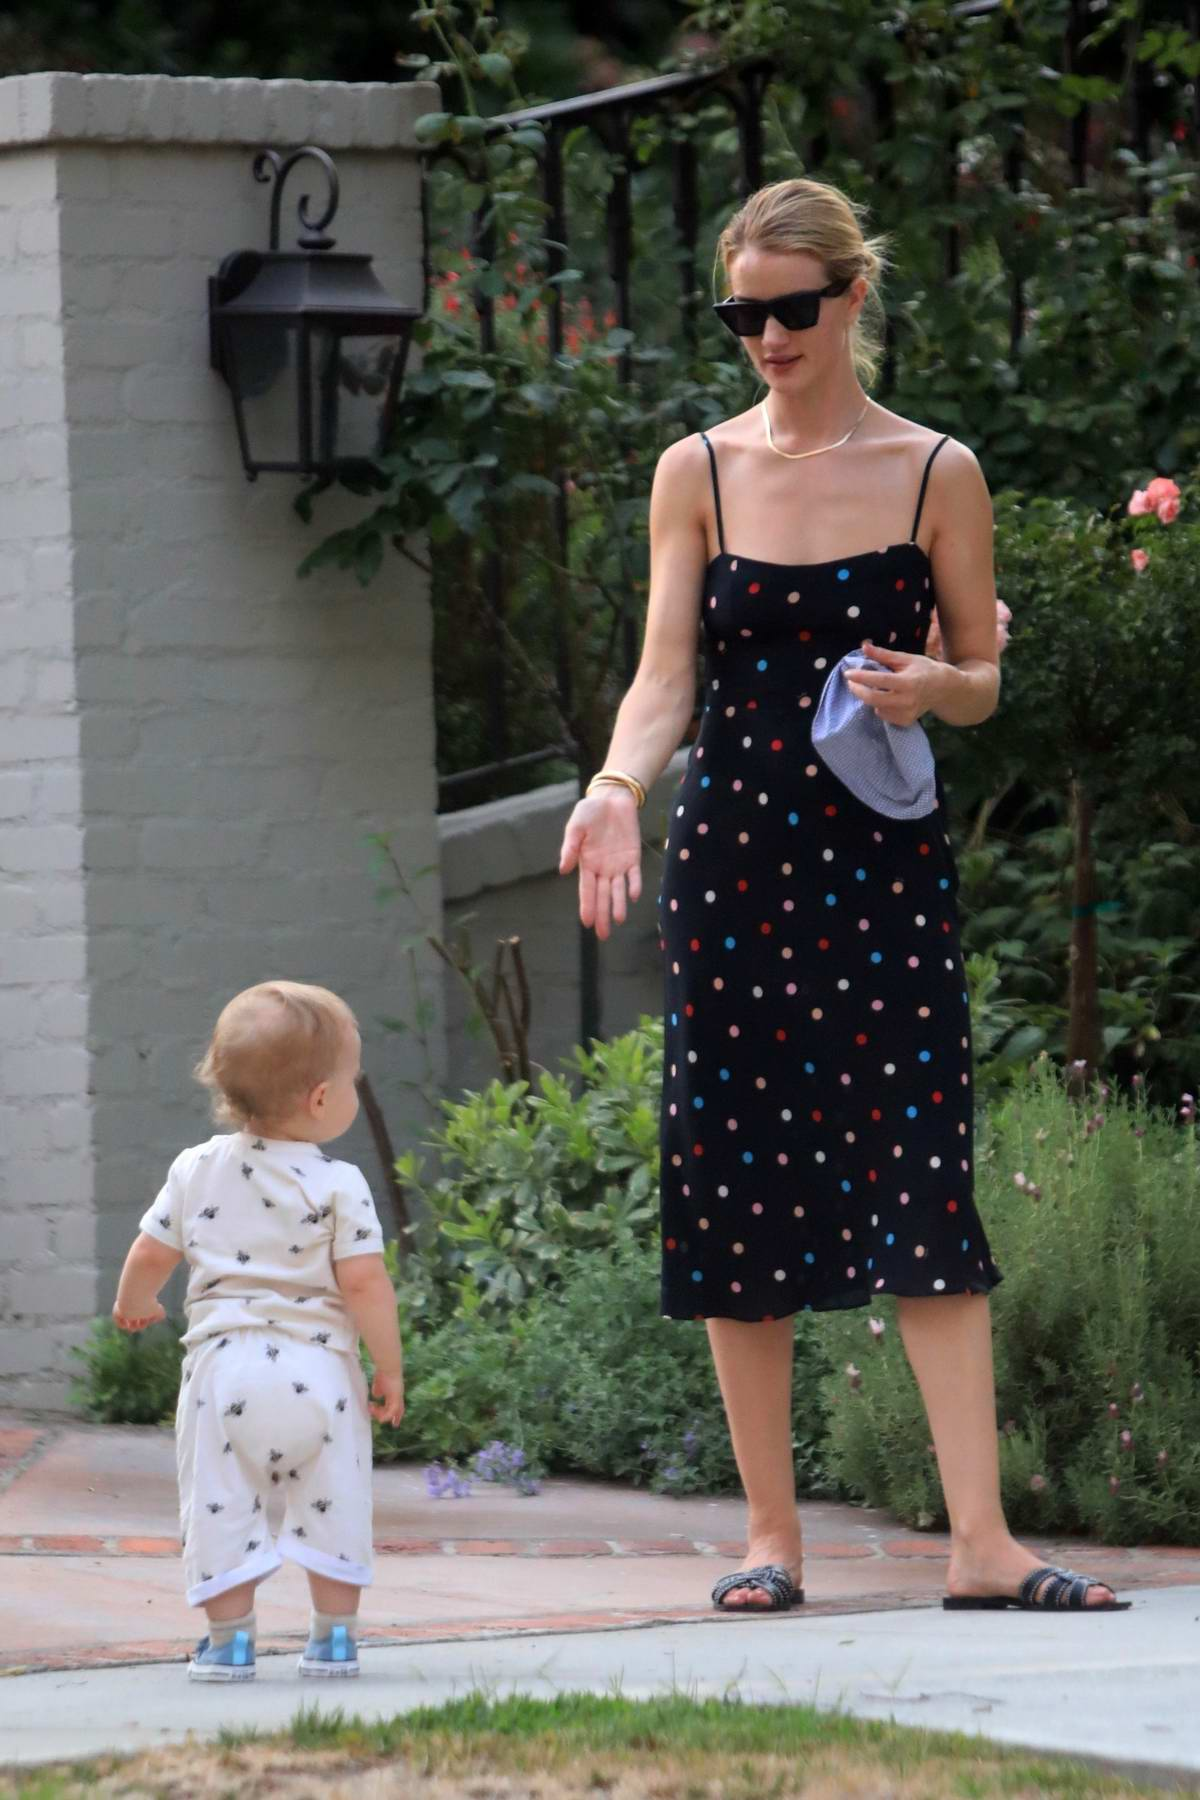 Rosie Huntington-Whiteley spends some quality time with her son in Beverly Hills, Los Angeles